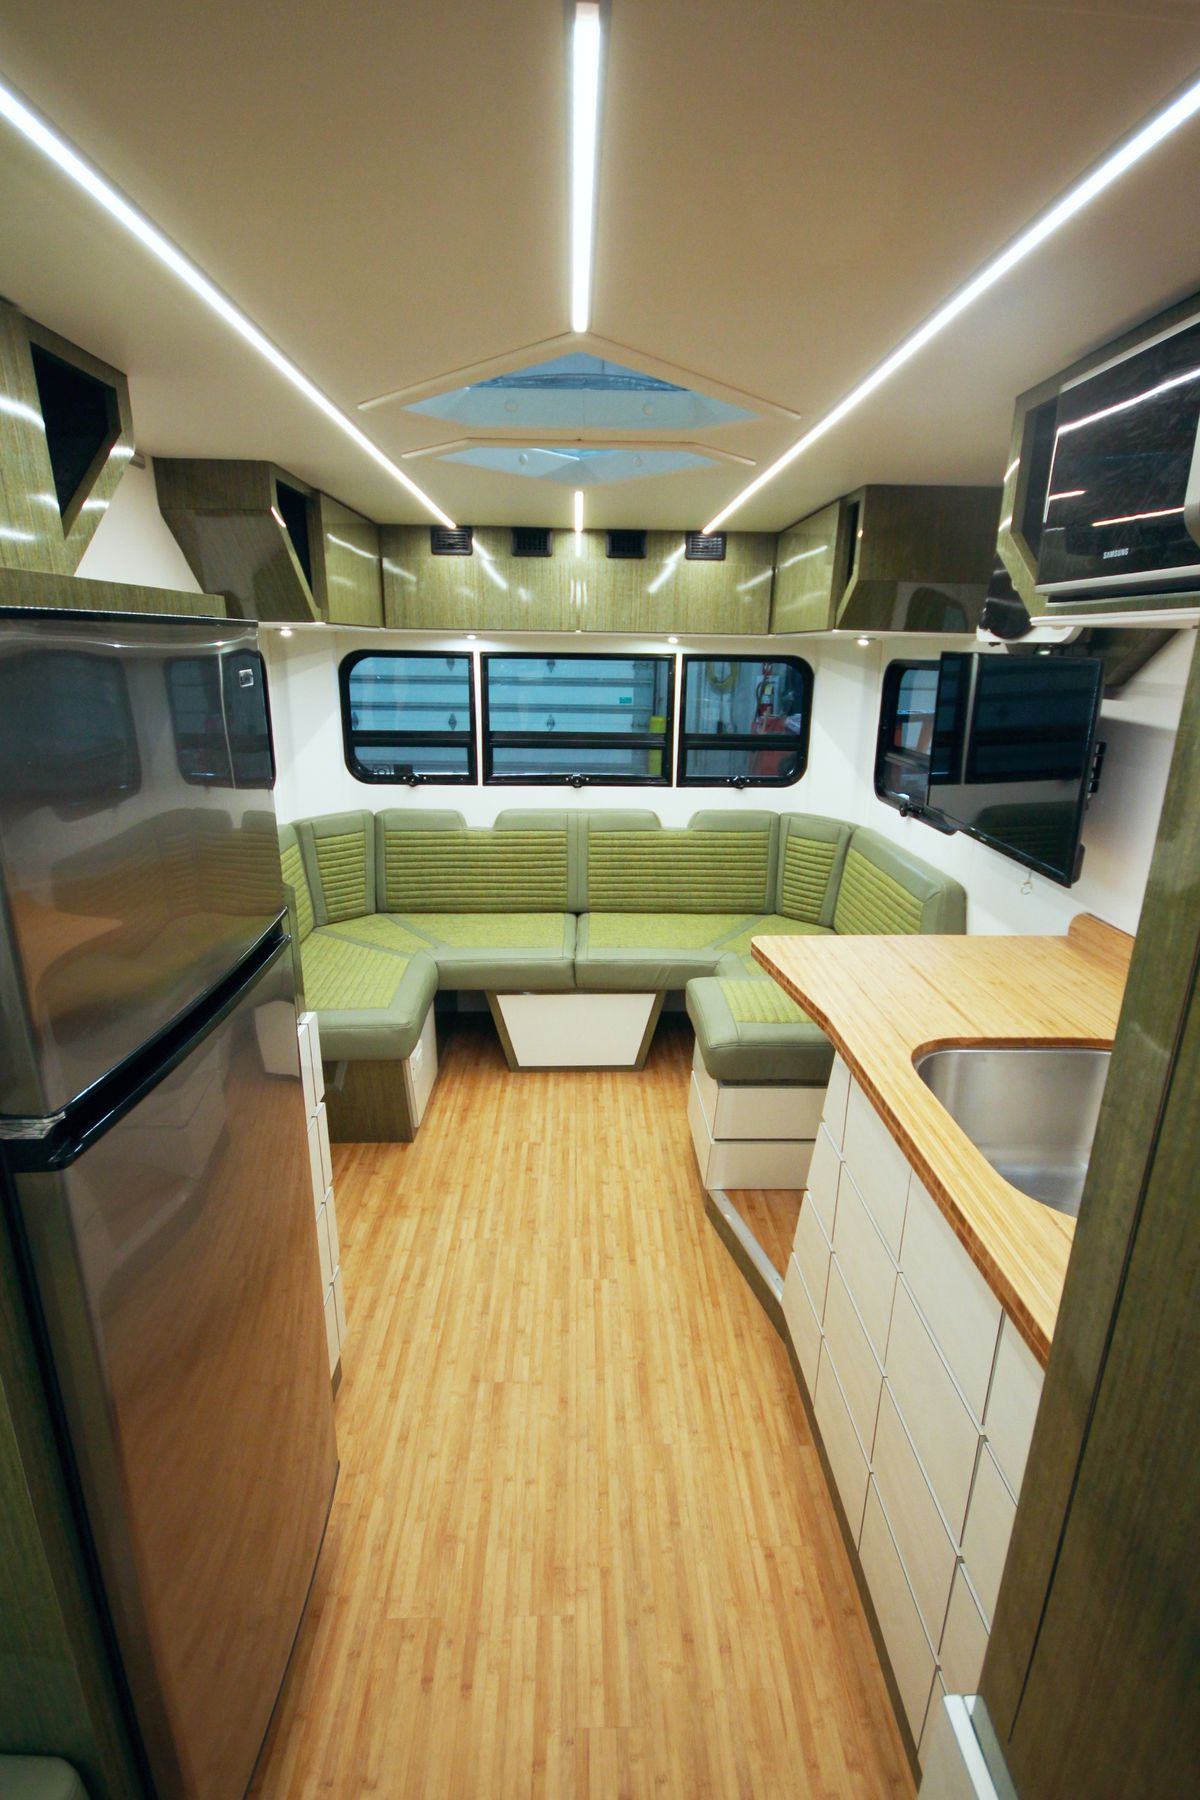 The interior of a vintage camper with wood floors, cream cabinets, bamboo kitchen counters, and a green u-shaped seating area.